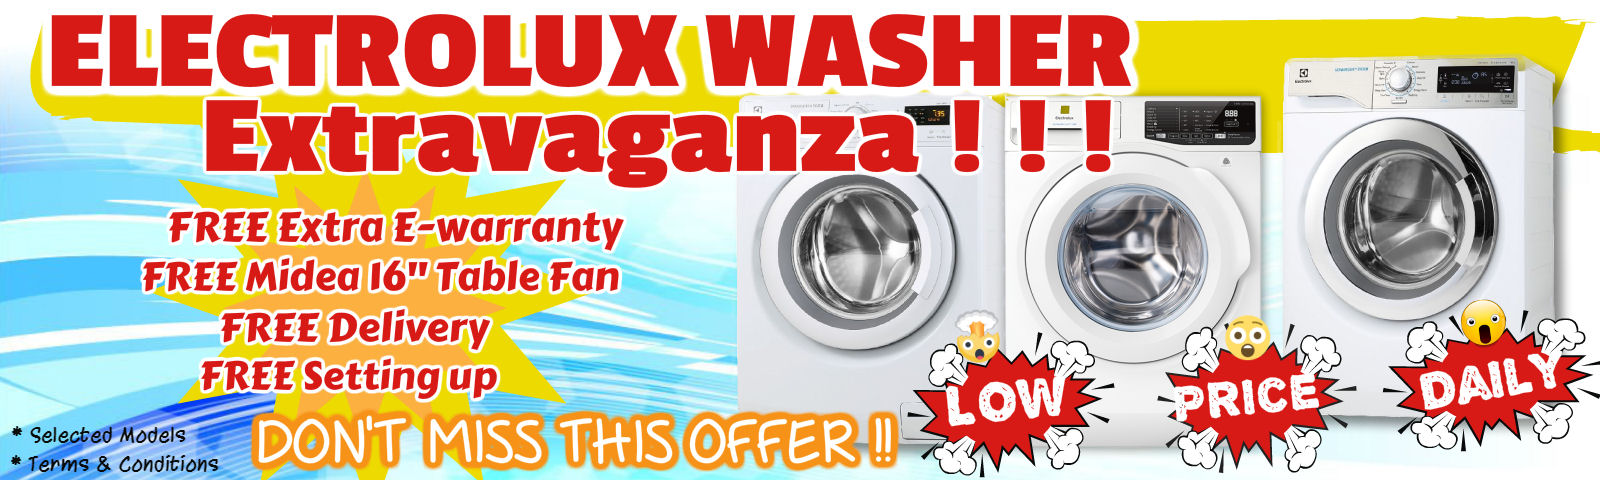 Electrolux Washer Extravaganza Offer!!